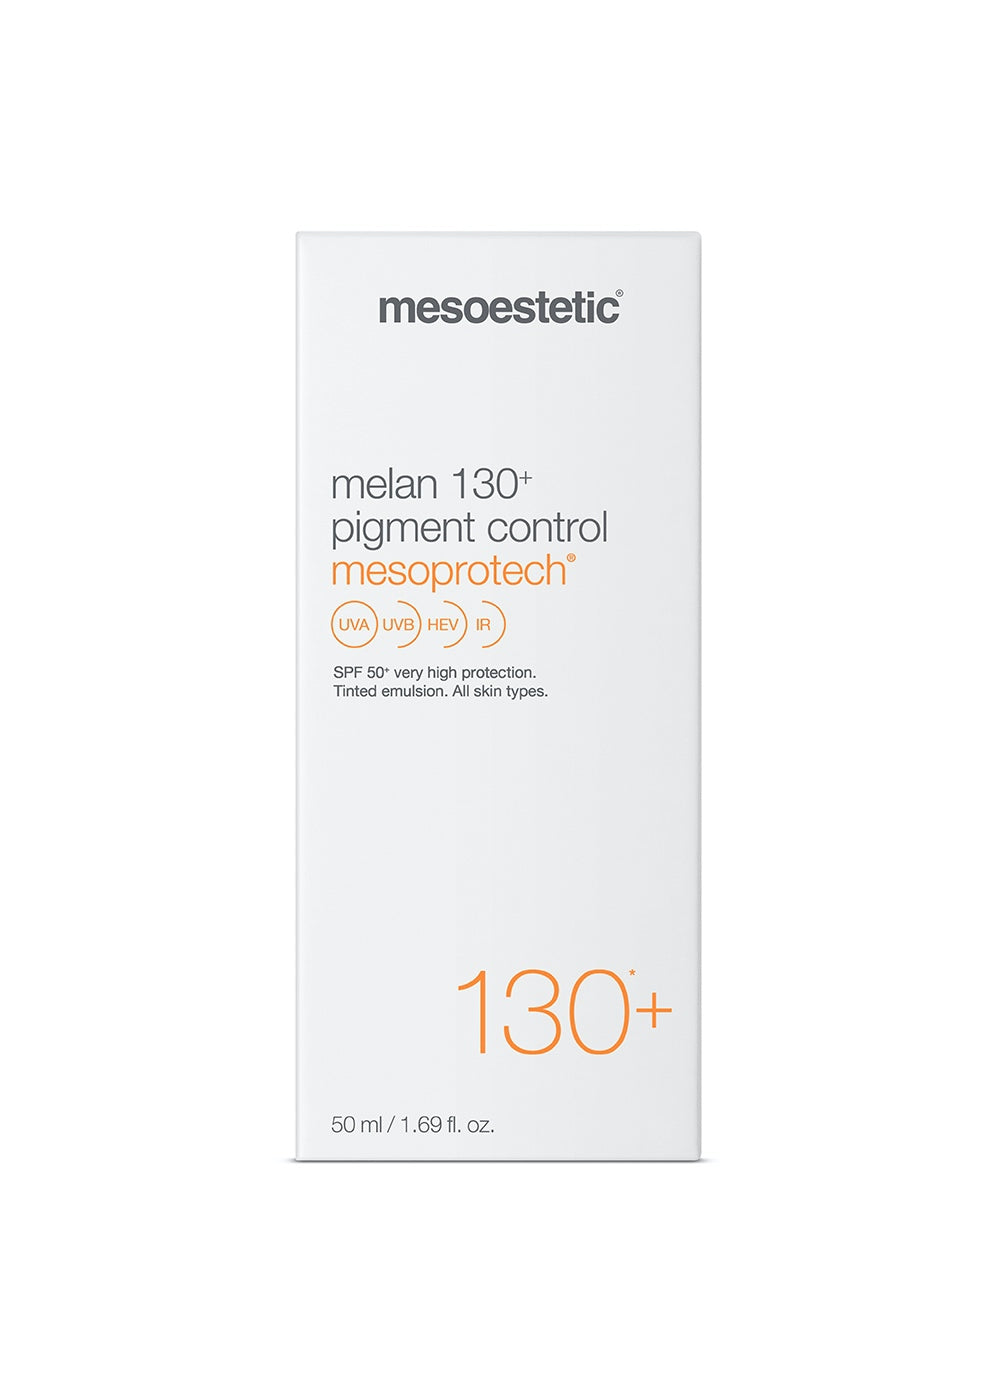 Mesoestetic Mesoprotech Melan 130+ Pigment Control